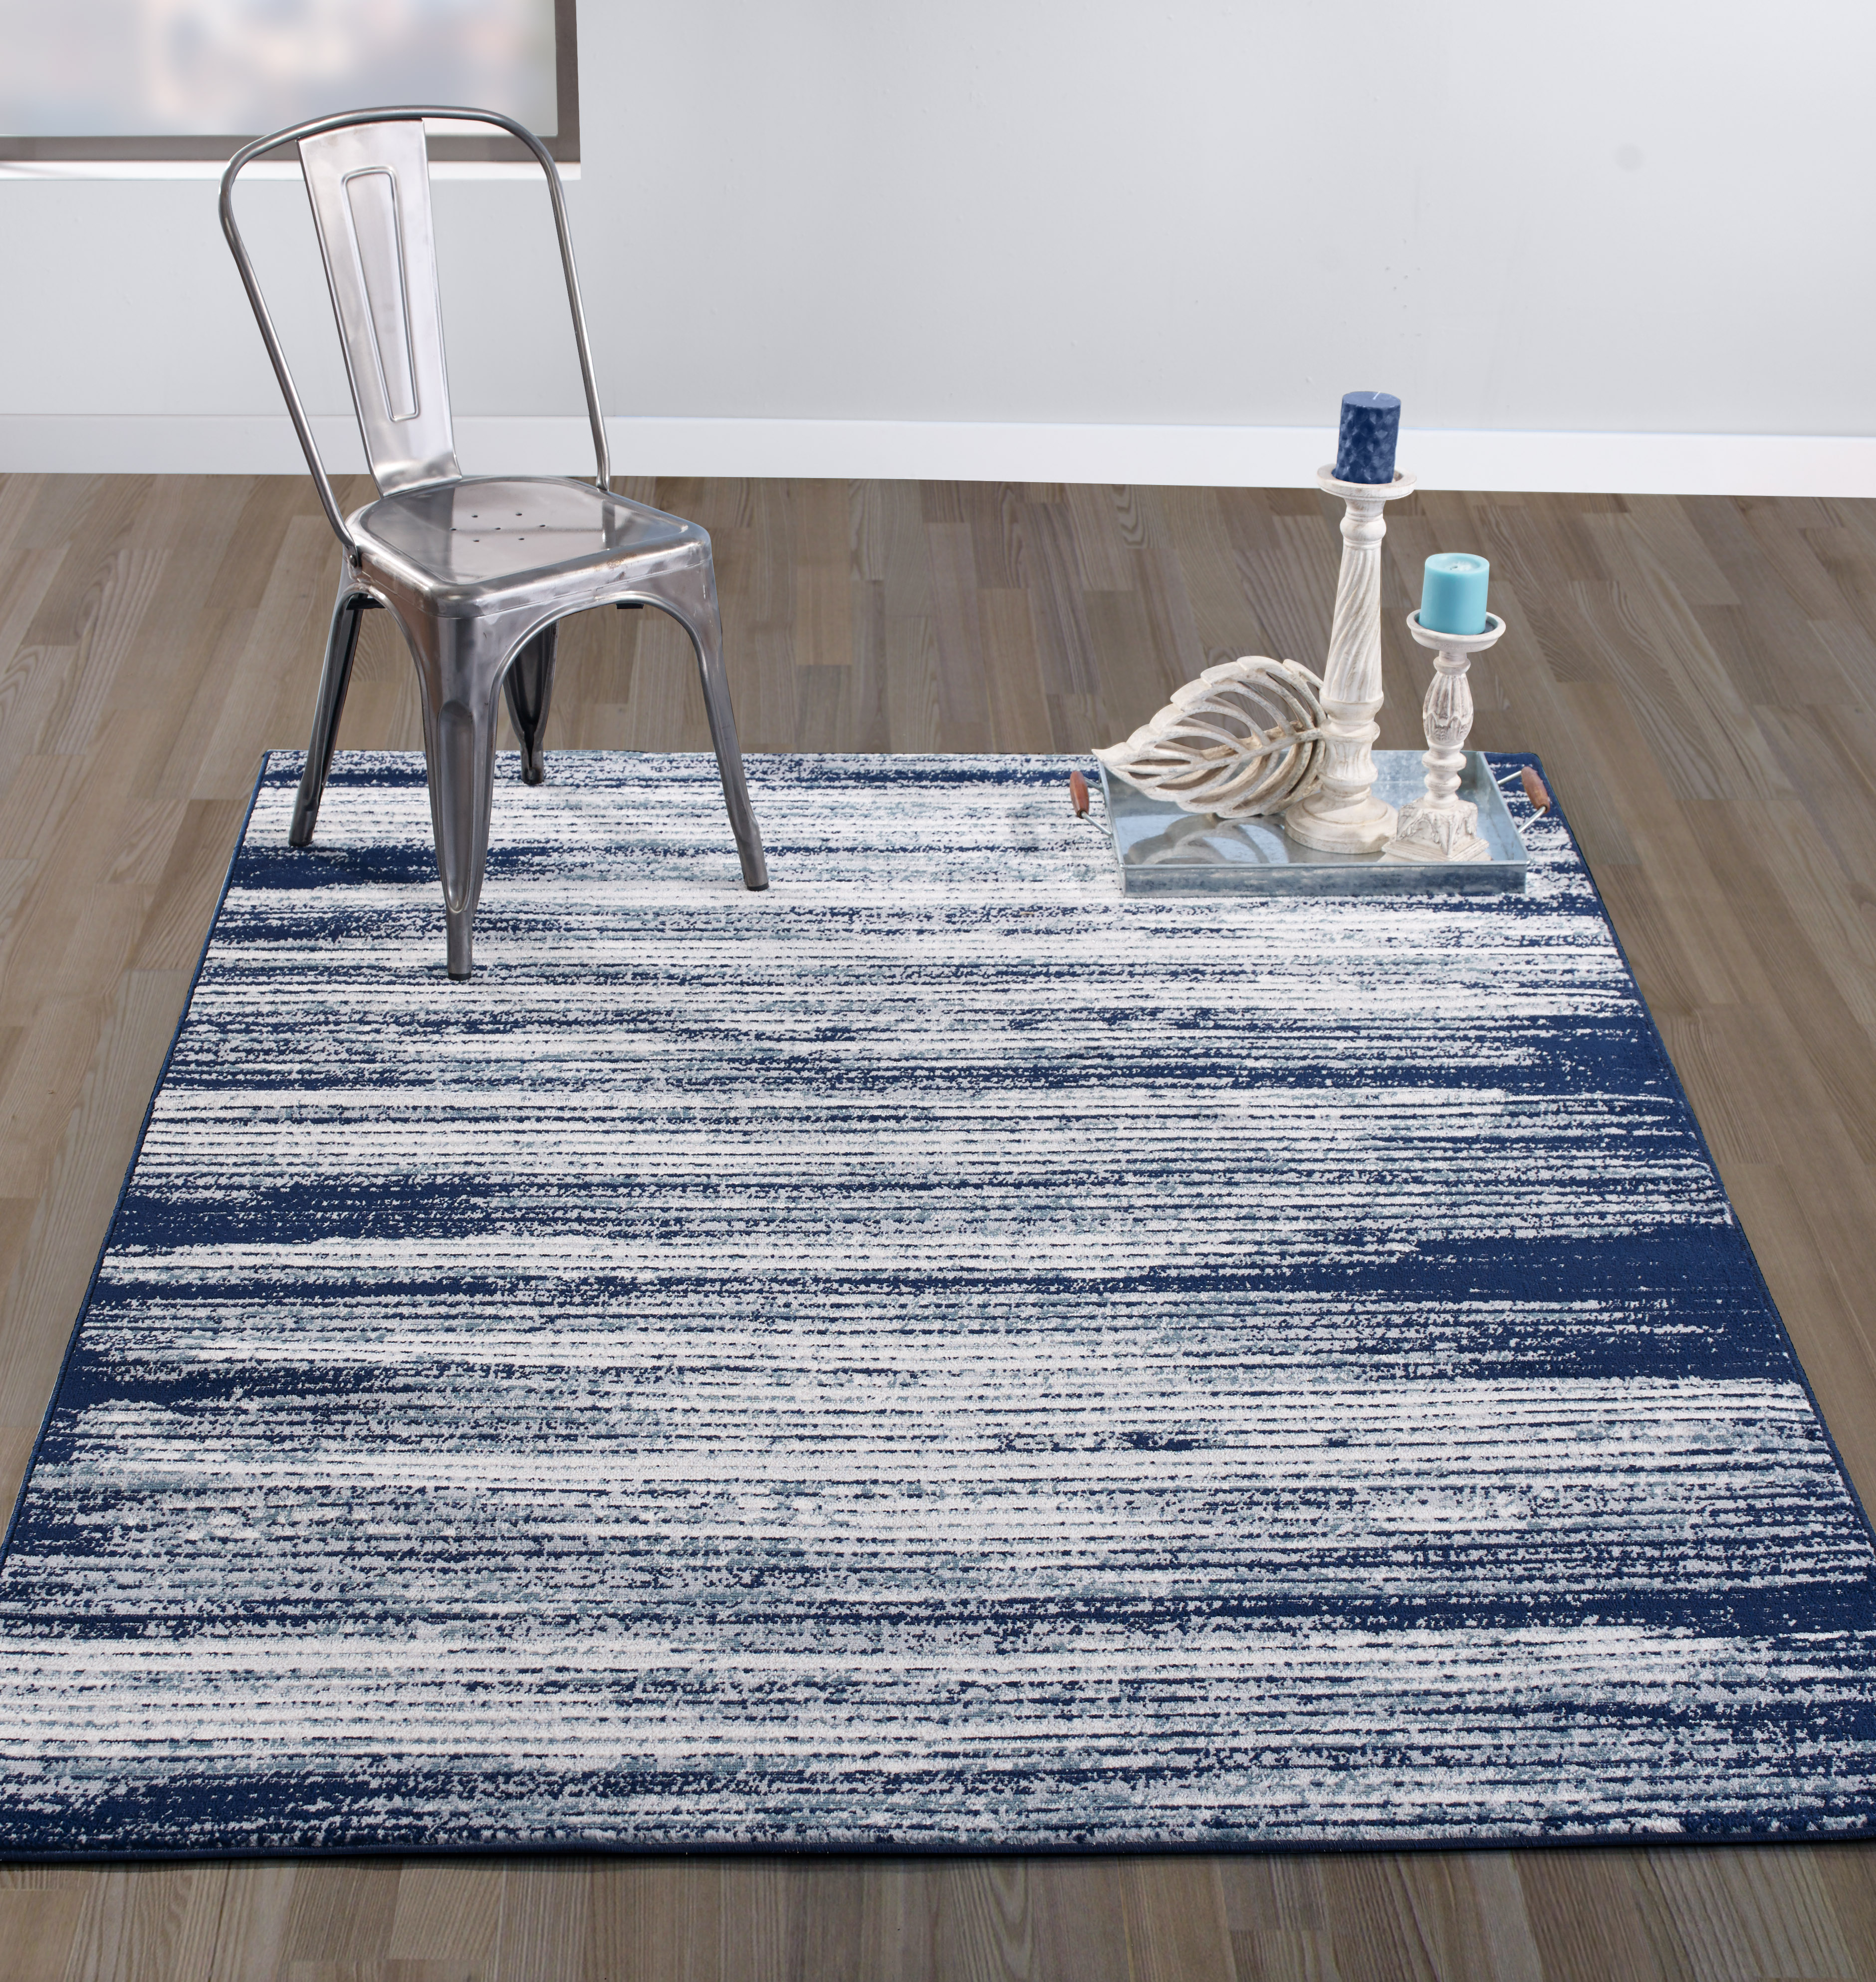 "Diagona Designs Contemporary Stripes Design Modern 8' by 10' Area Rug, 7'10"" W x 9'10"" L Ivory / Navy / Teal"